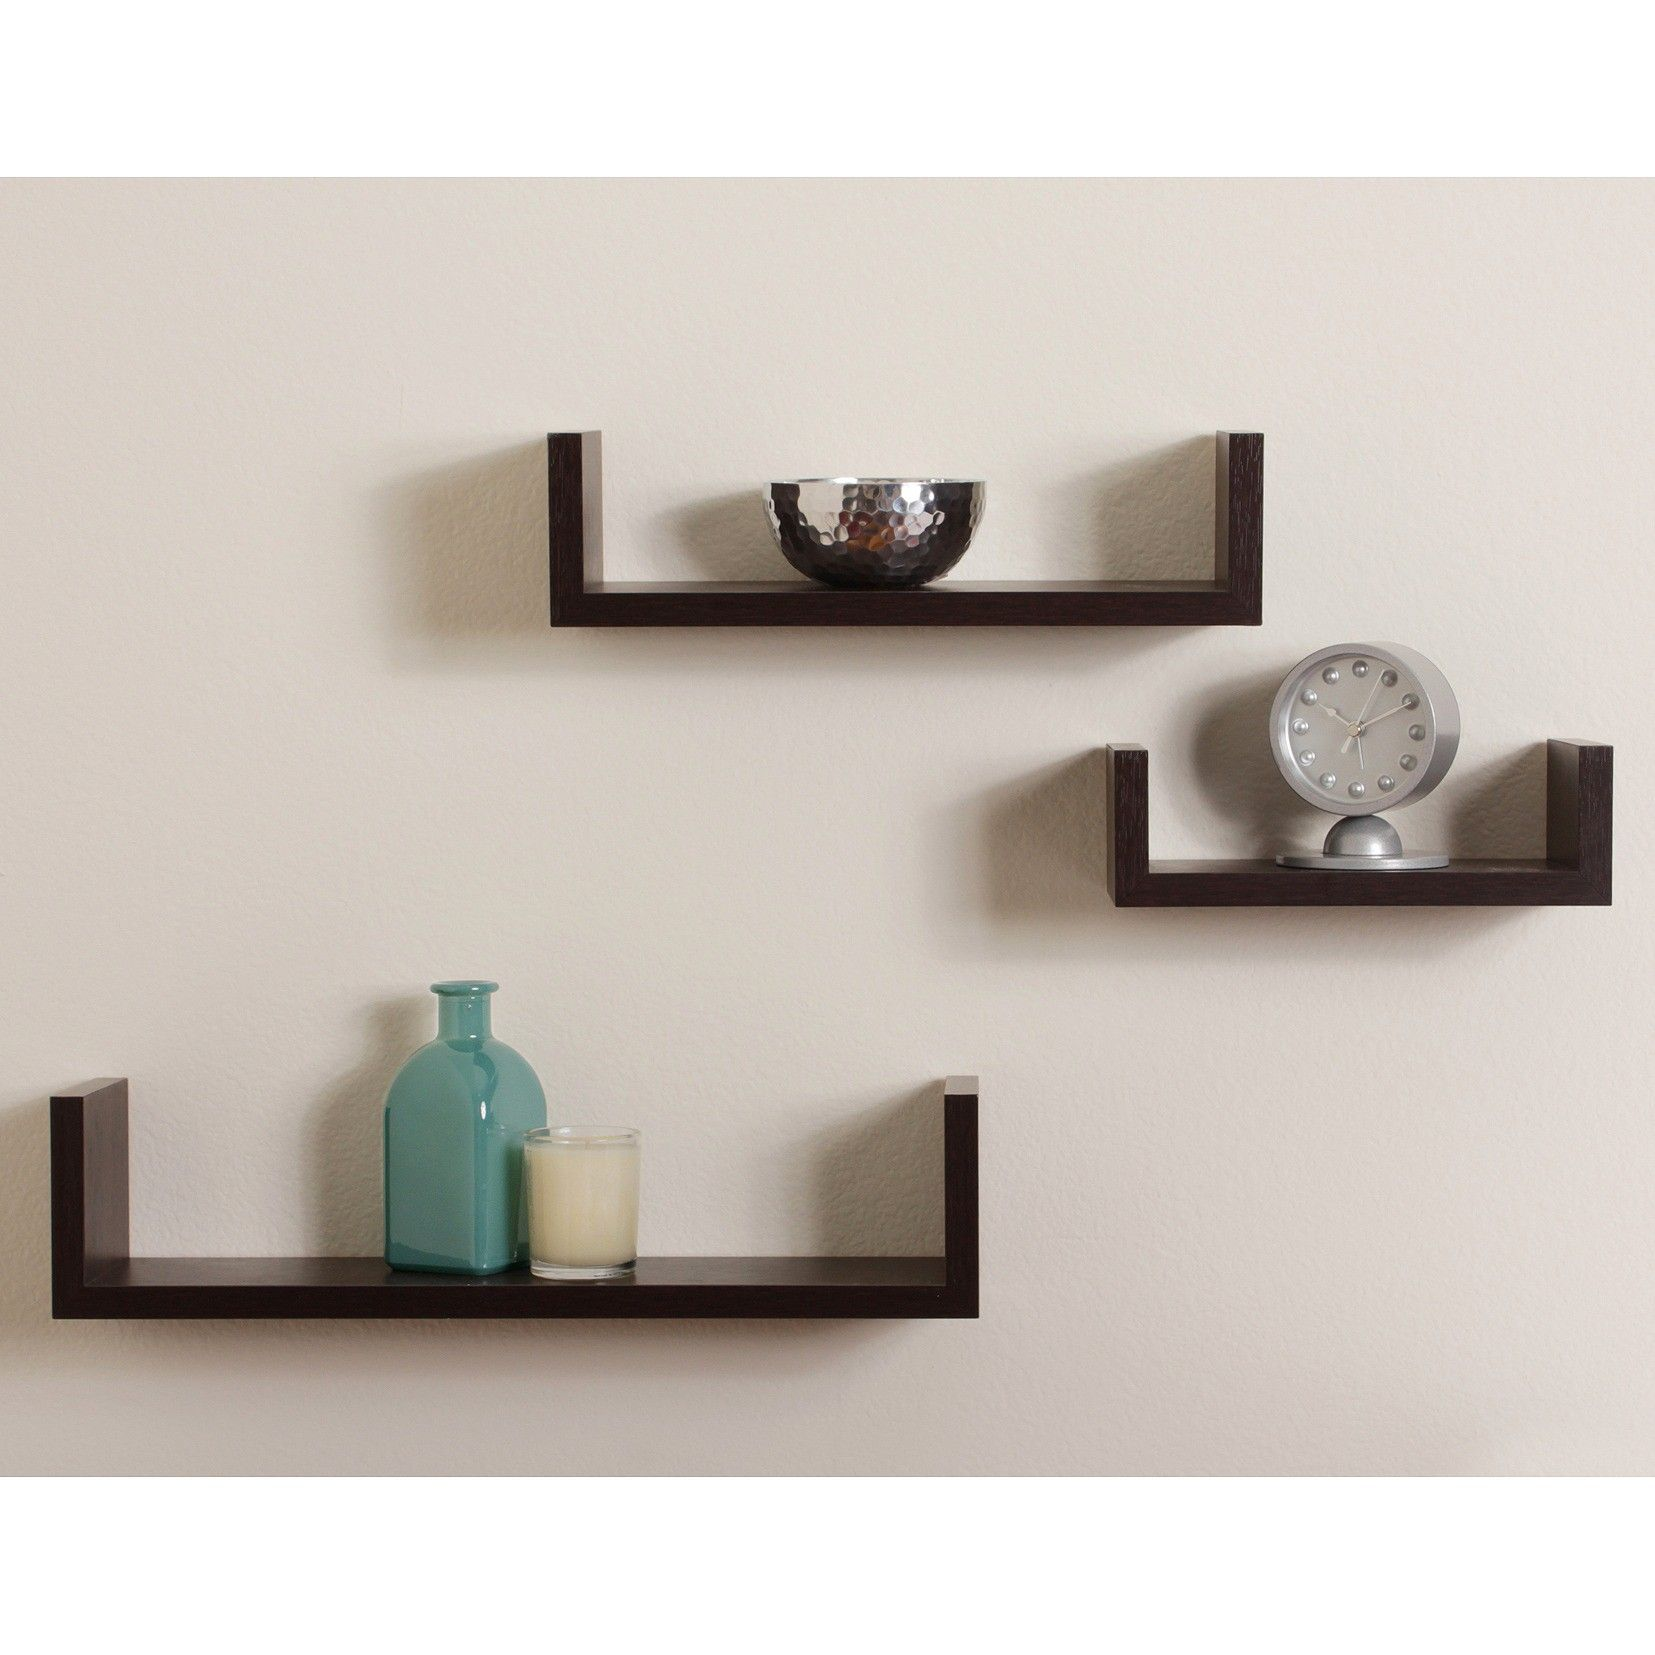 Floating Shelves Target Danya Bnesting Shelves 3 Pack  Shelves Target And Nest